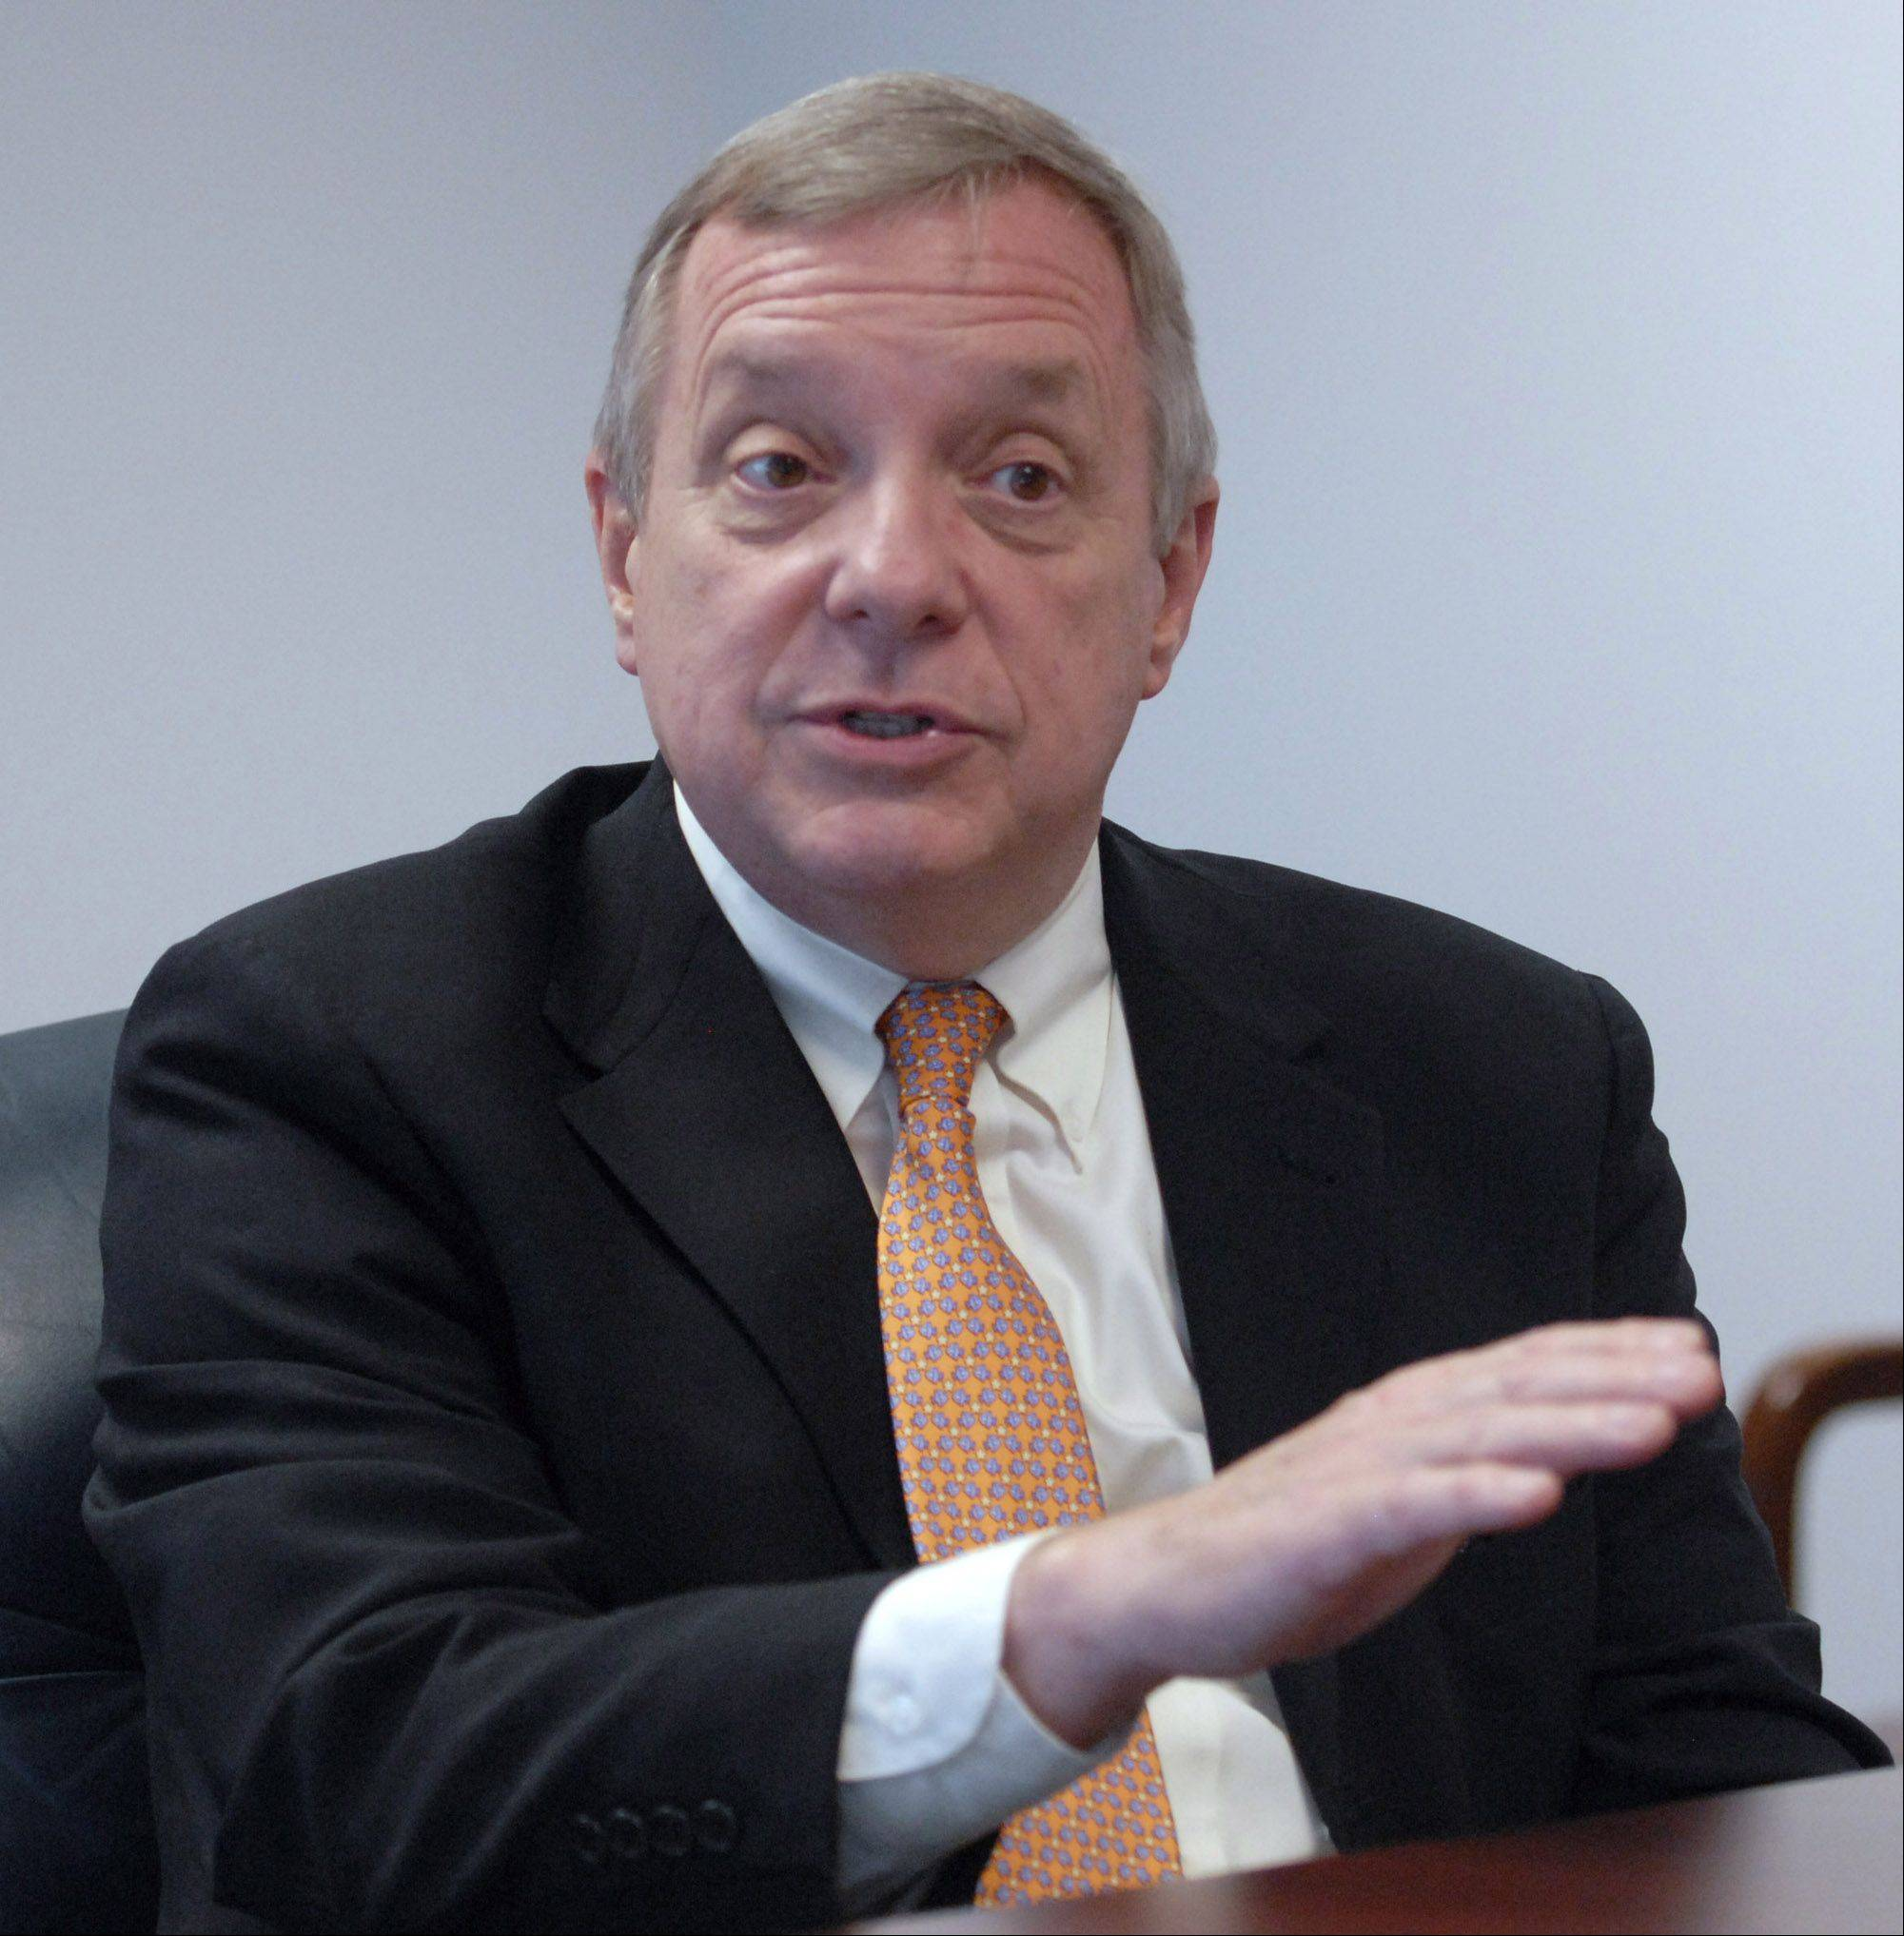 Durbin headed to Washington for Syria debate